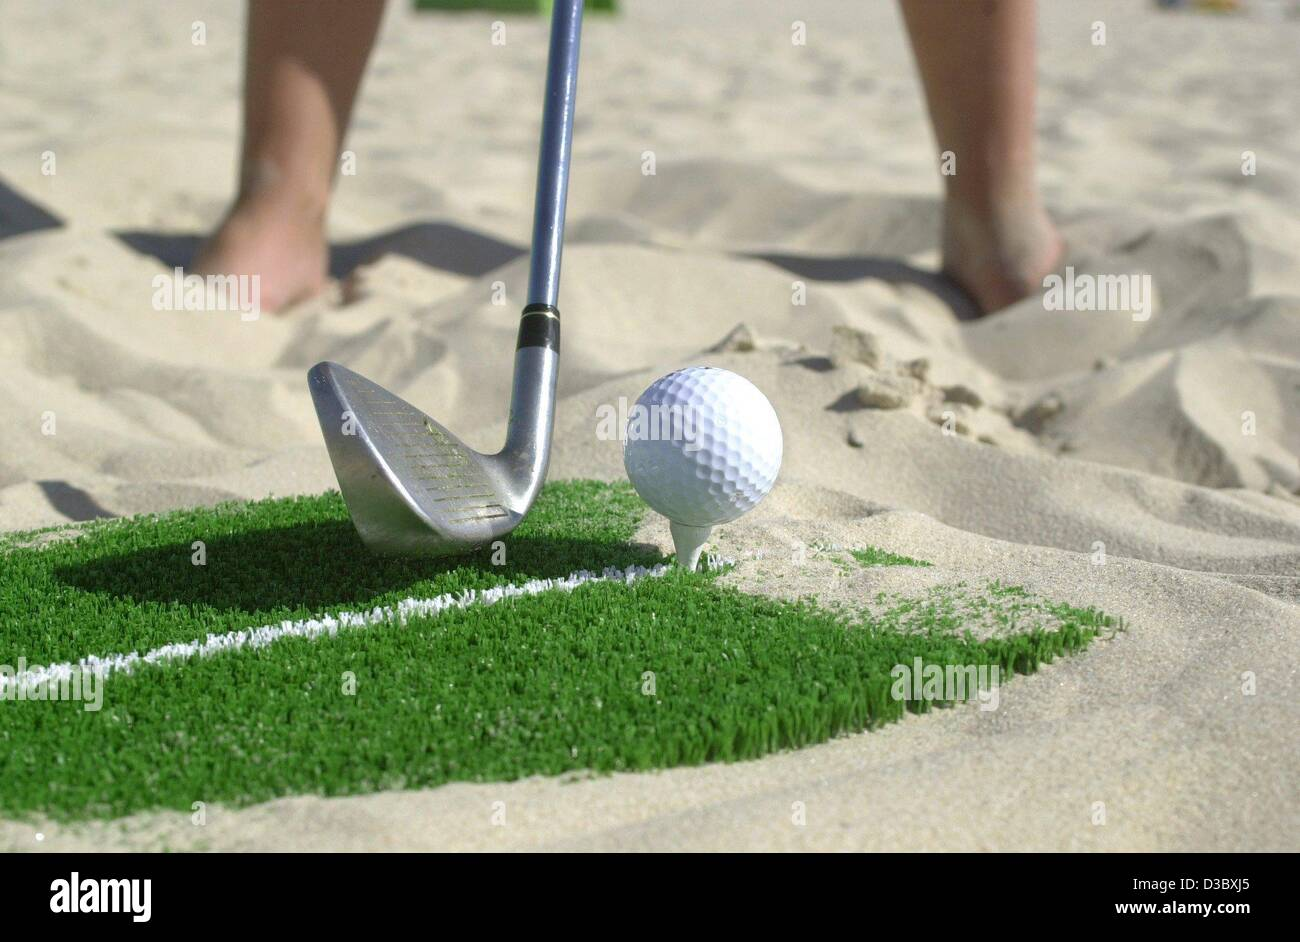 (dpa) - A golfer plays a tee-off on the beach in Ahlbeck on the island Usedom, Germany, 4 August 2003. Behind volleyballers - Stock Image